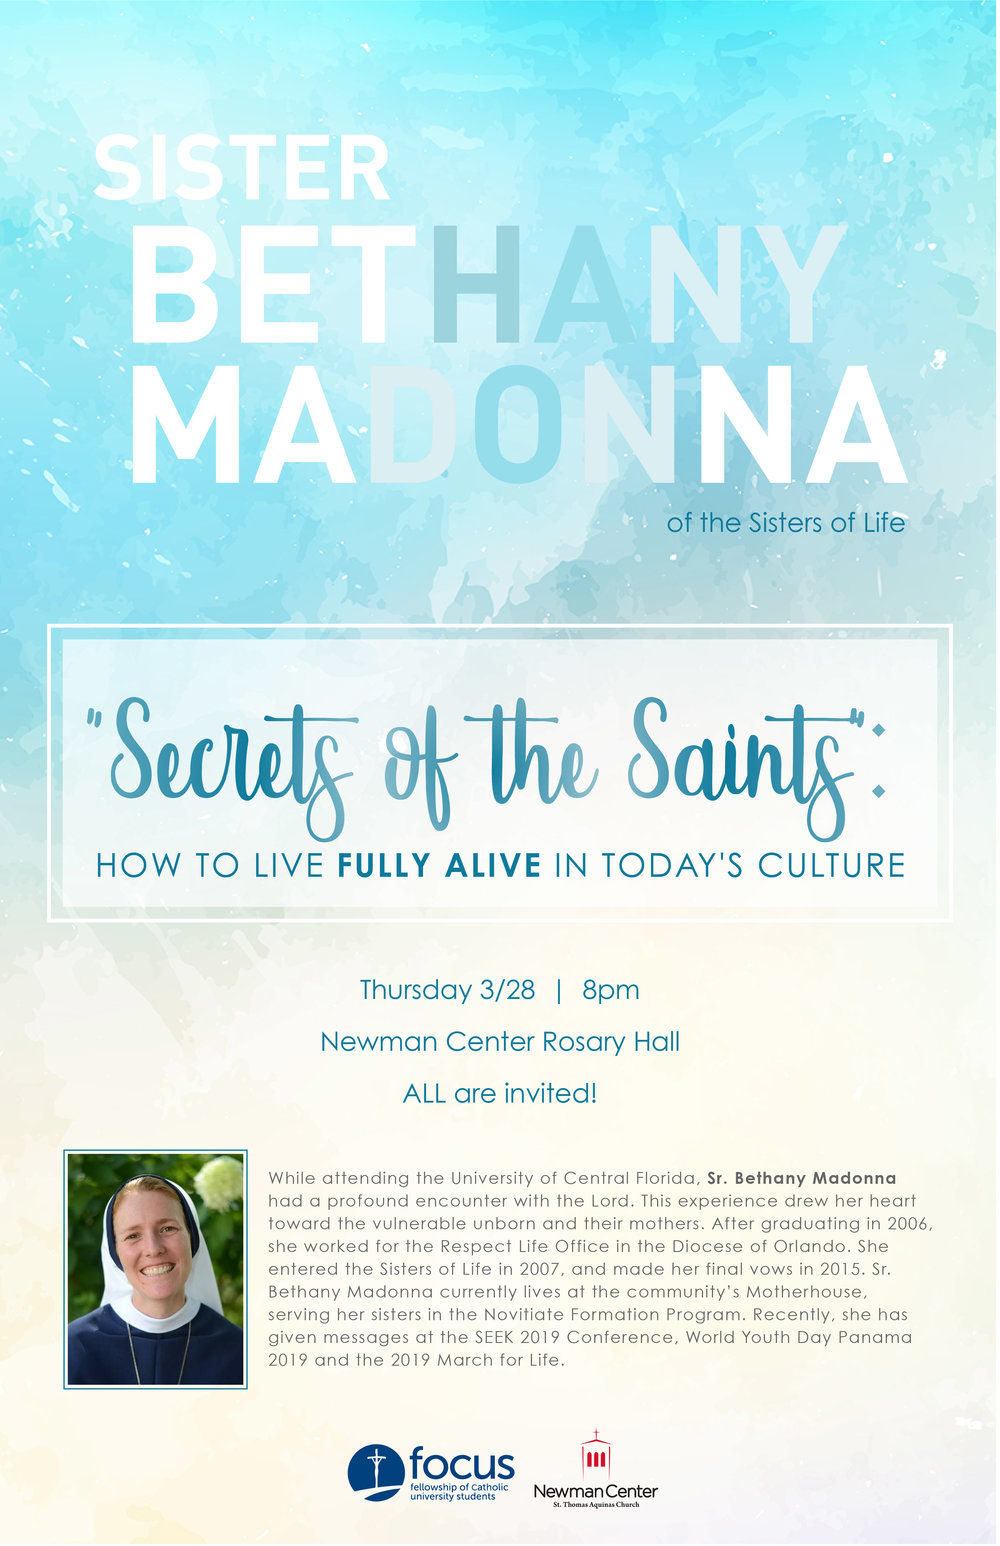 sr_bethany_madonna_talk_digital-01.jpg